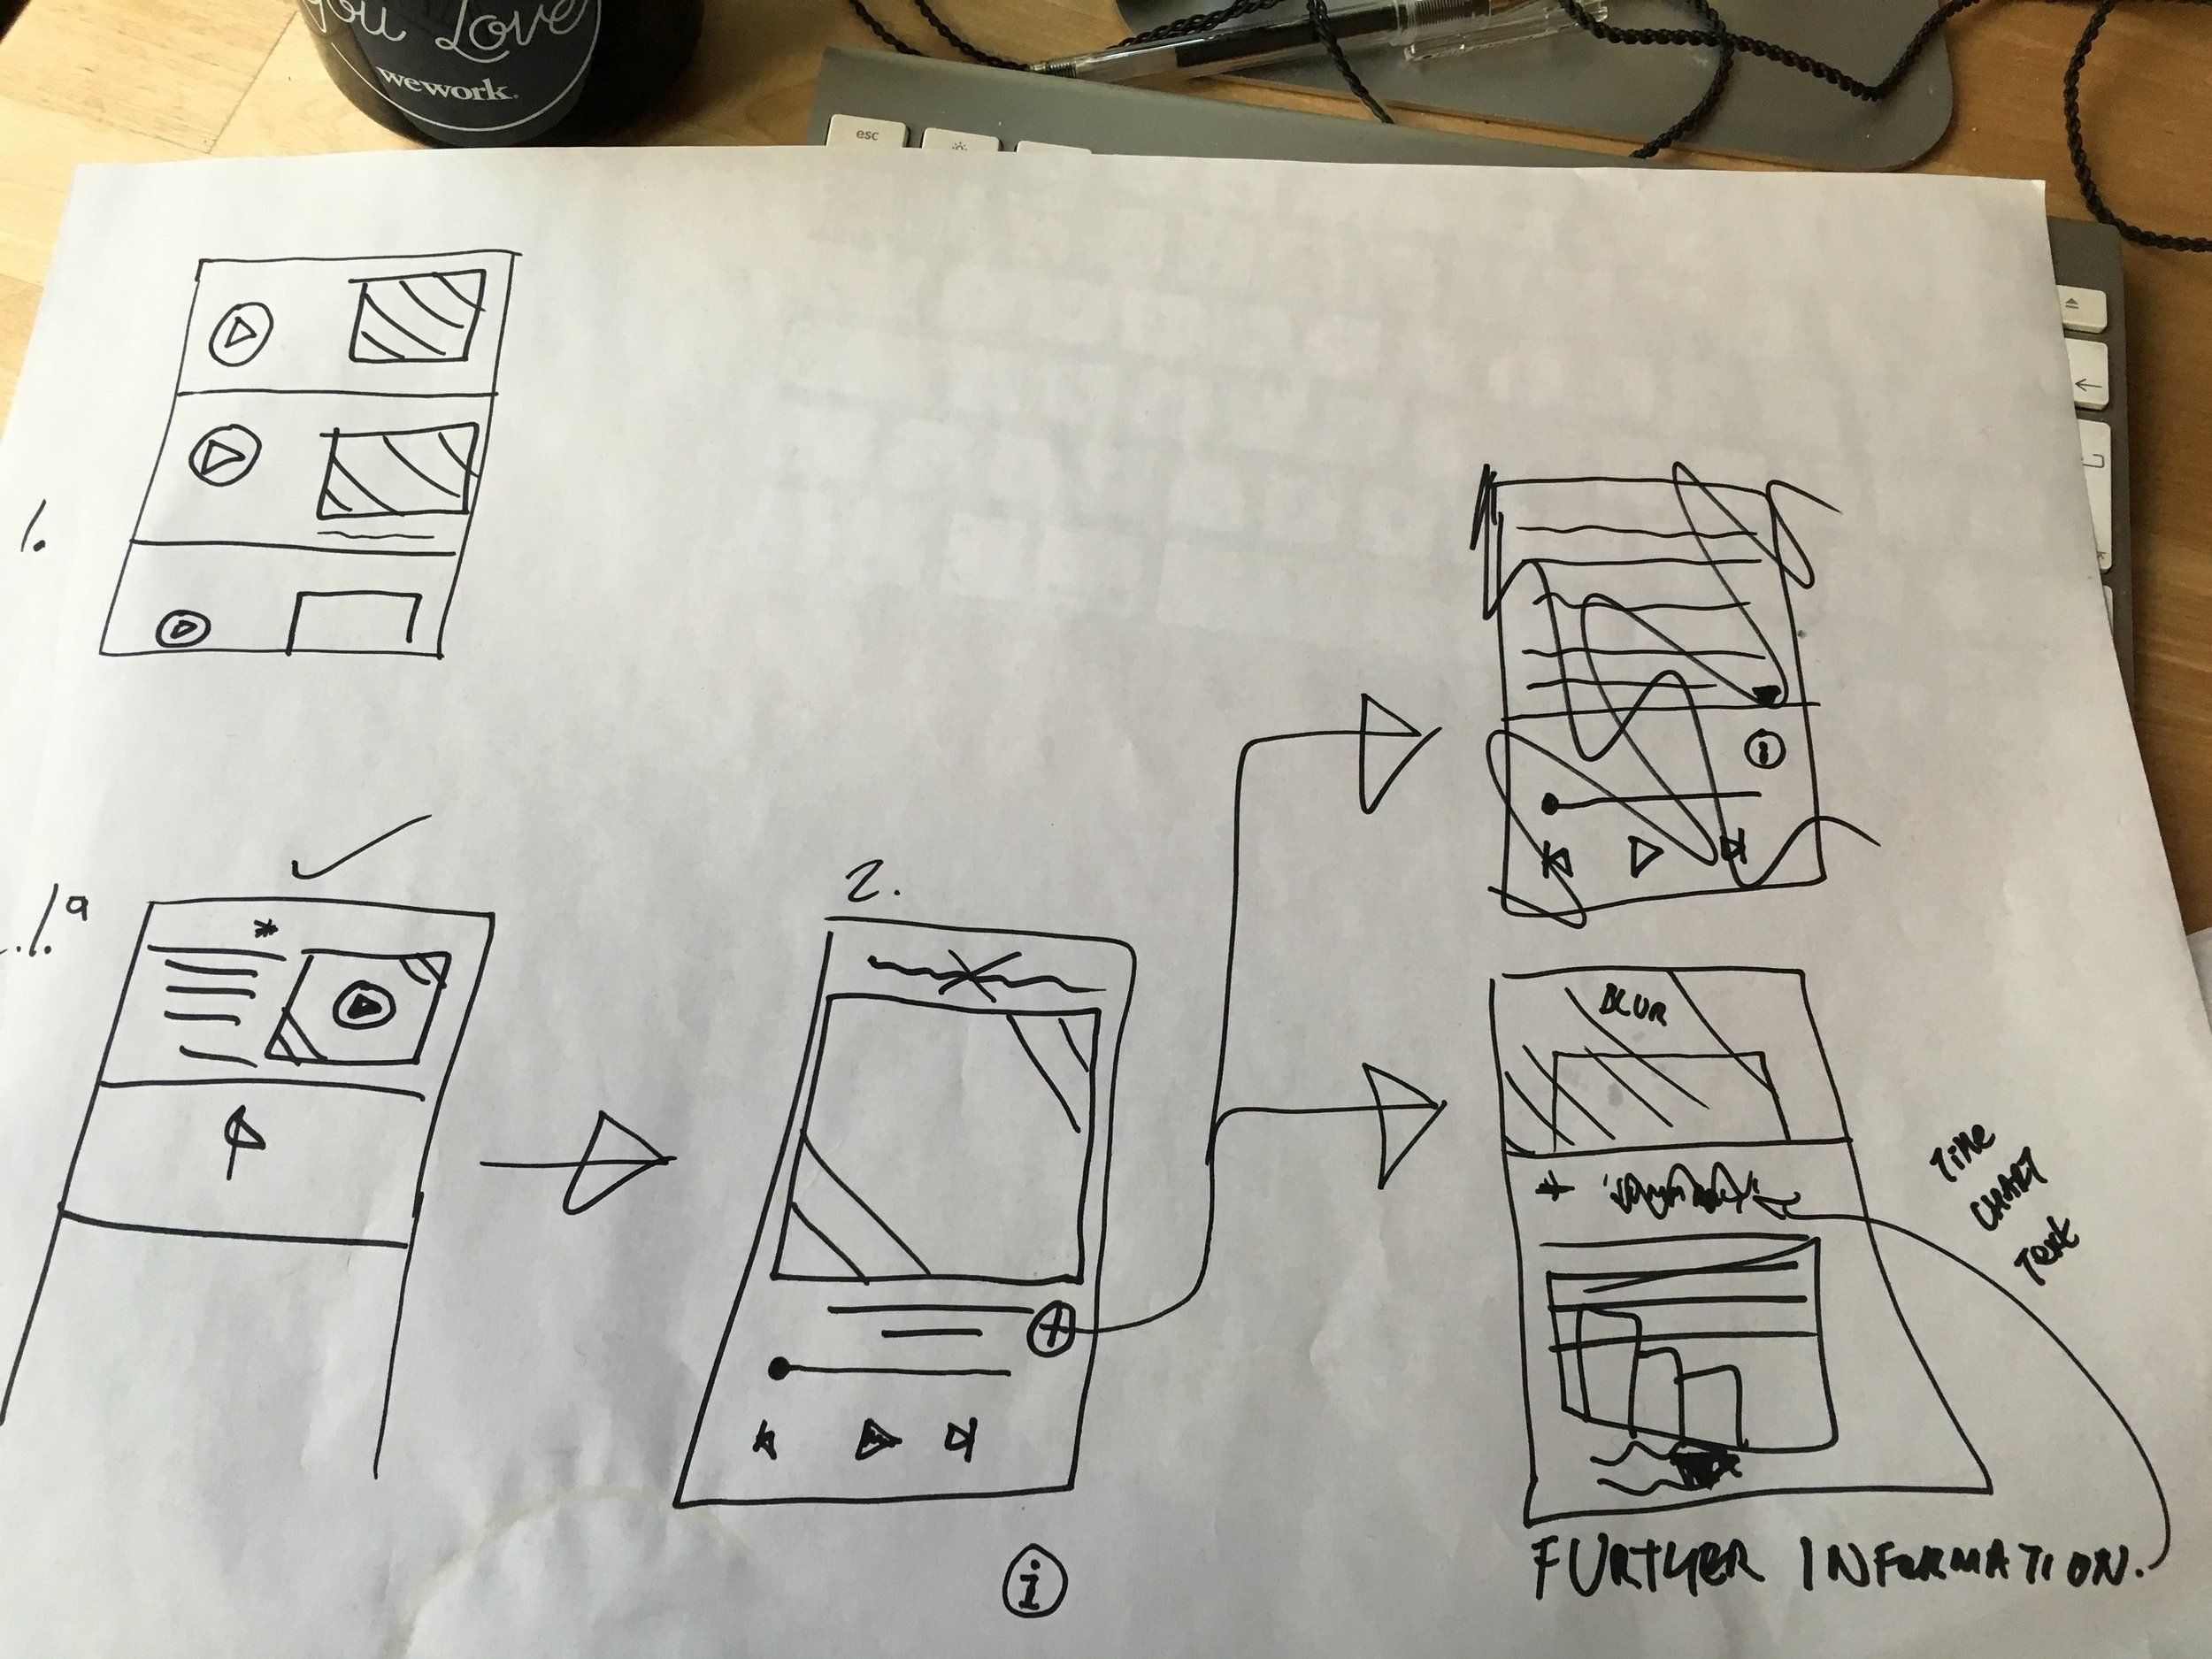 Some super early sketches of how I envisioned the podcast section to look. Clearly – I'm not an illustrator.